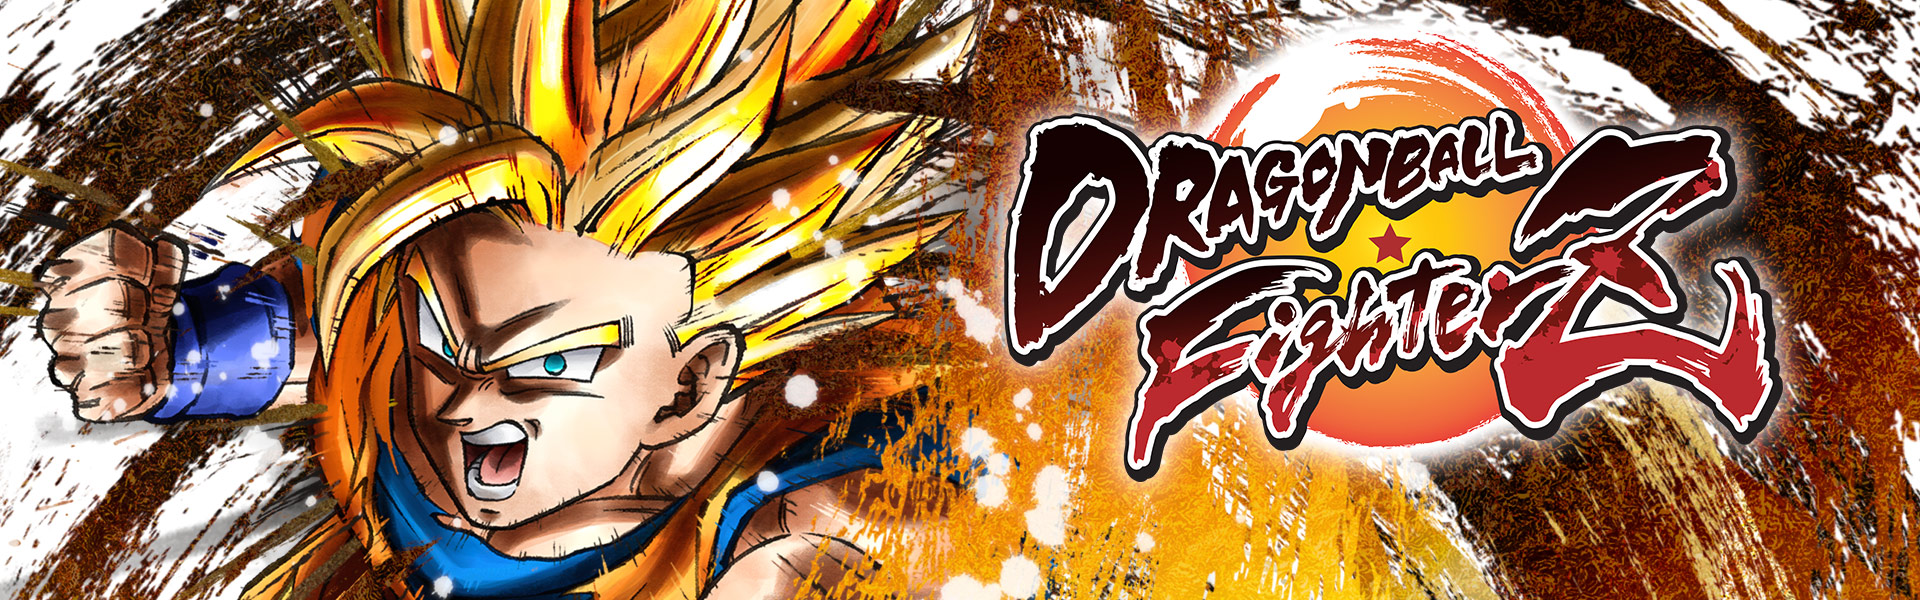 Dragon ball fighterz, Super Saiyan Goku se faisant face en position d'attaque